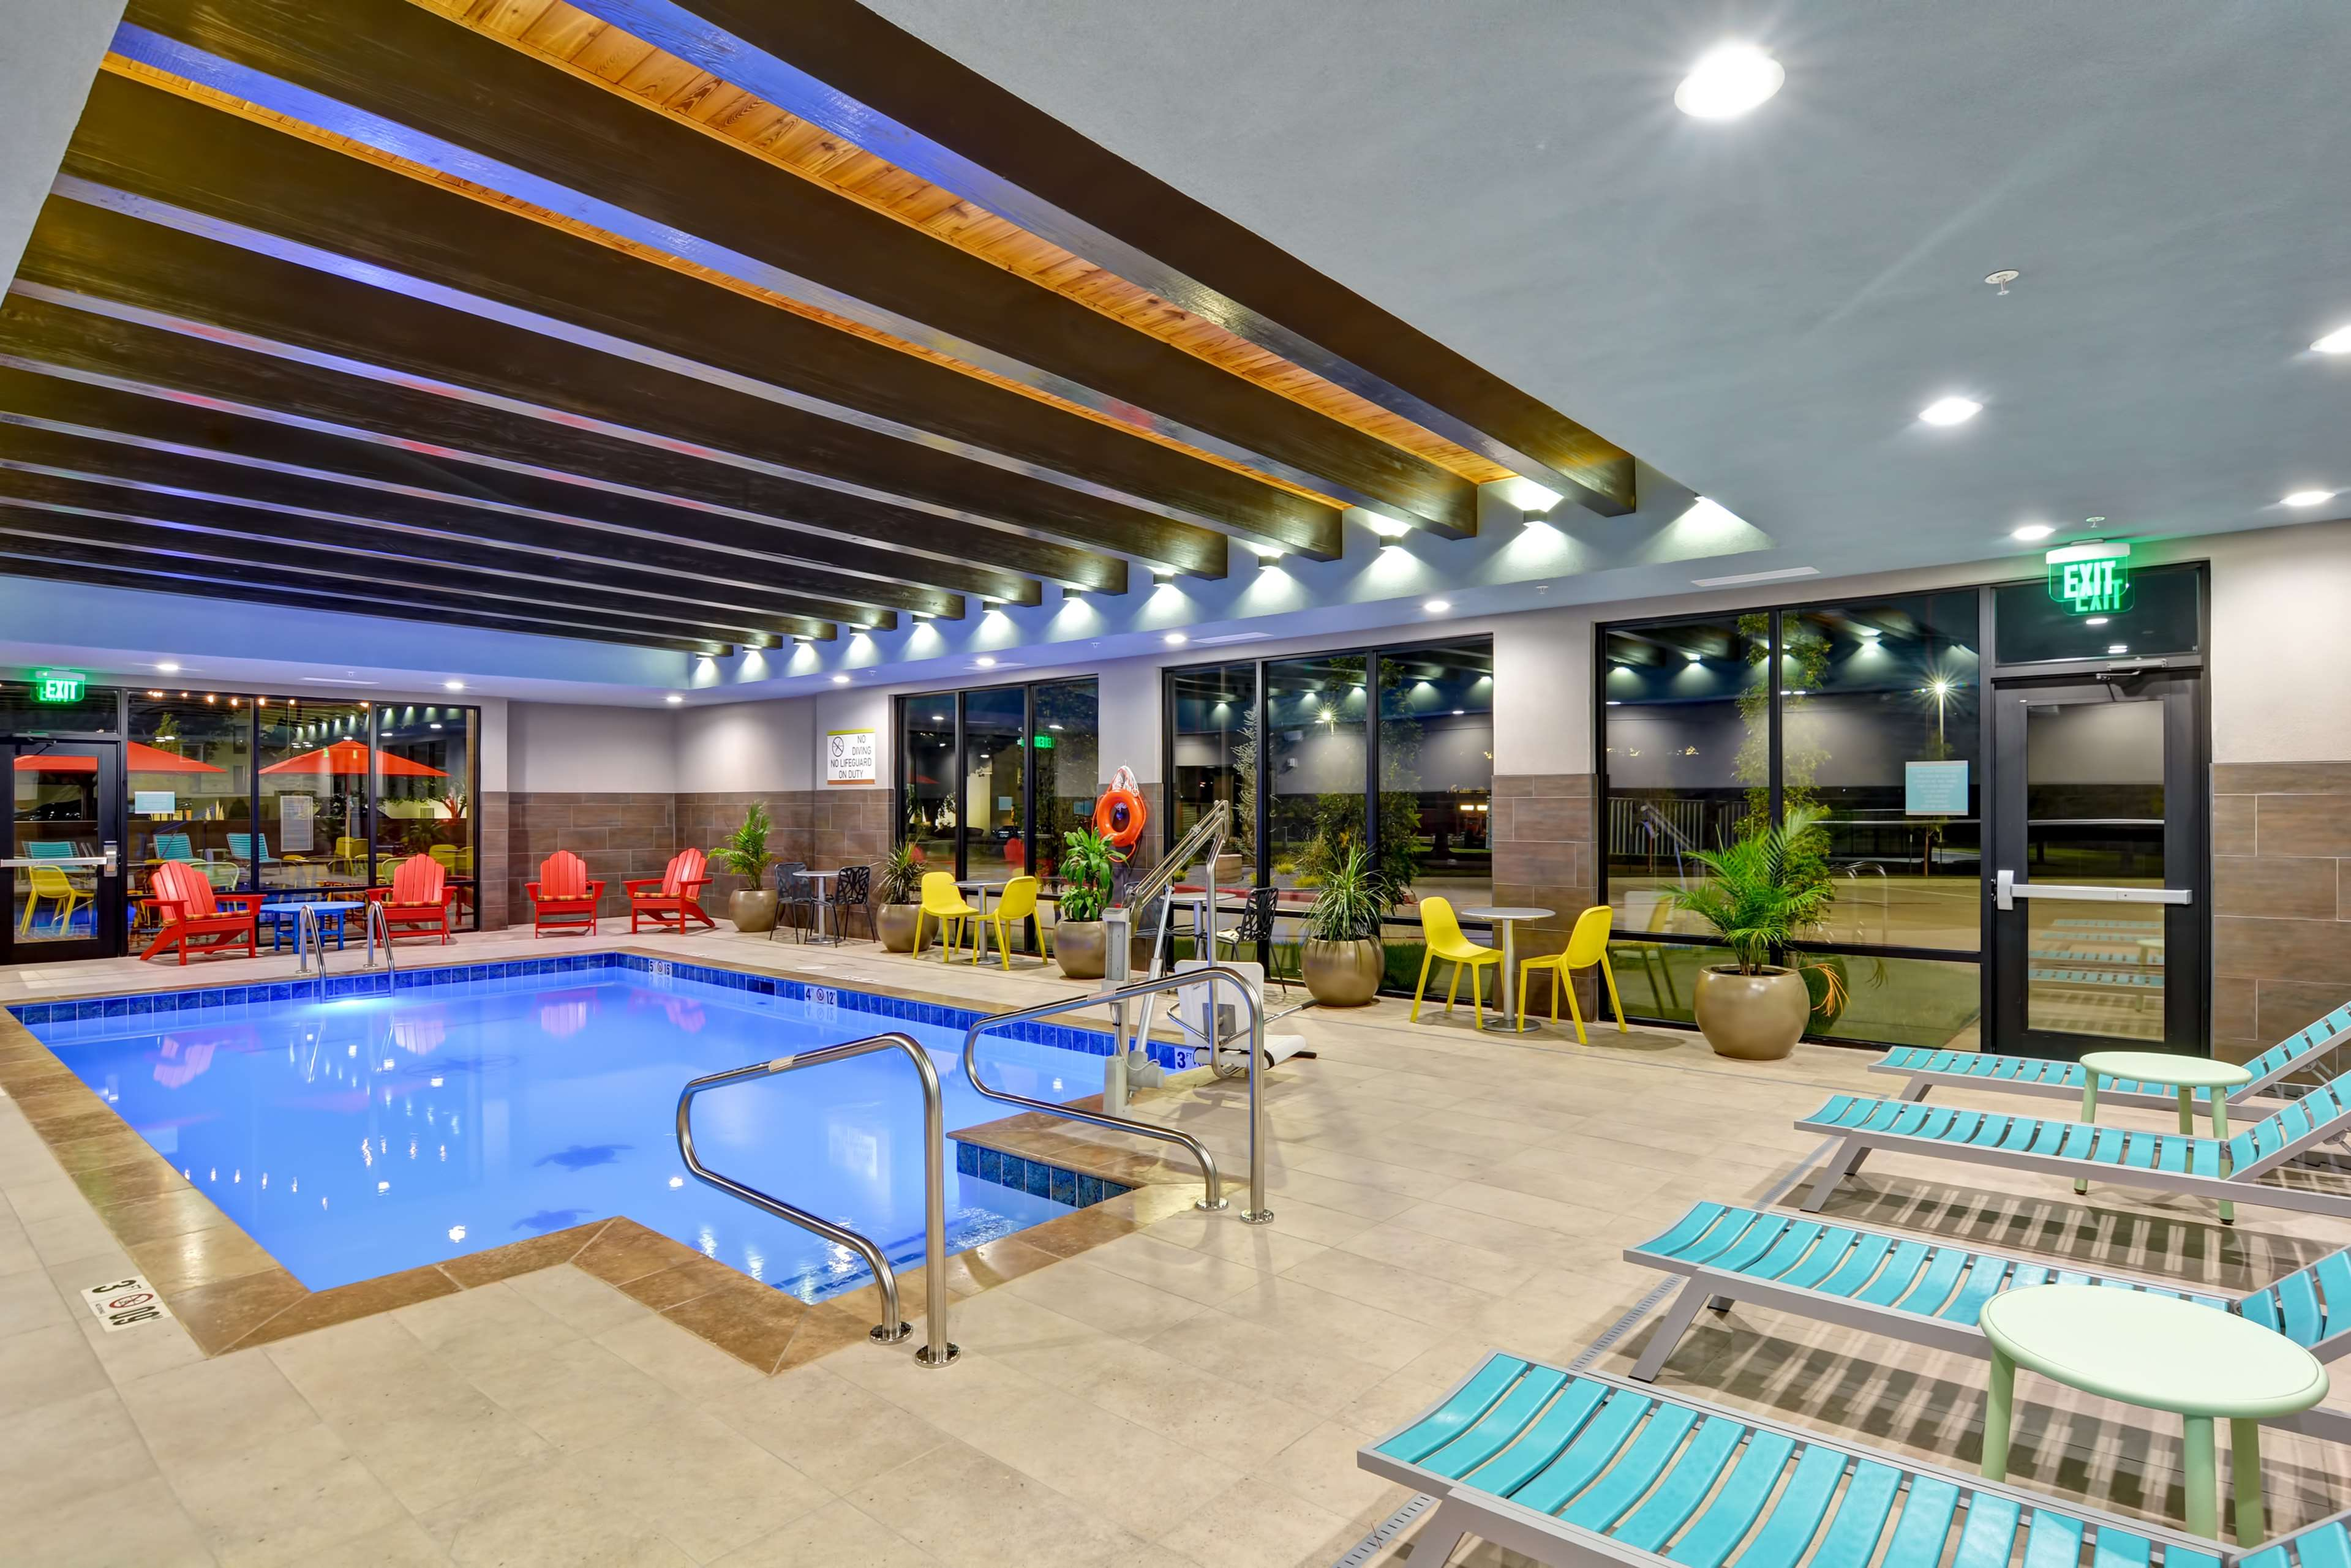 Home2 Suites by Hilton OKC Midwest City Tinker AFB image 9